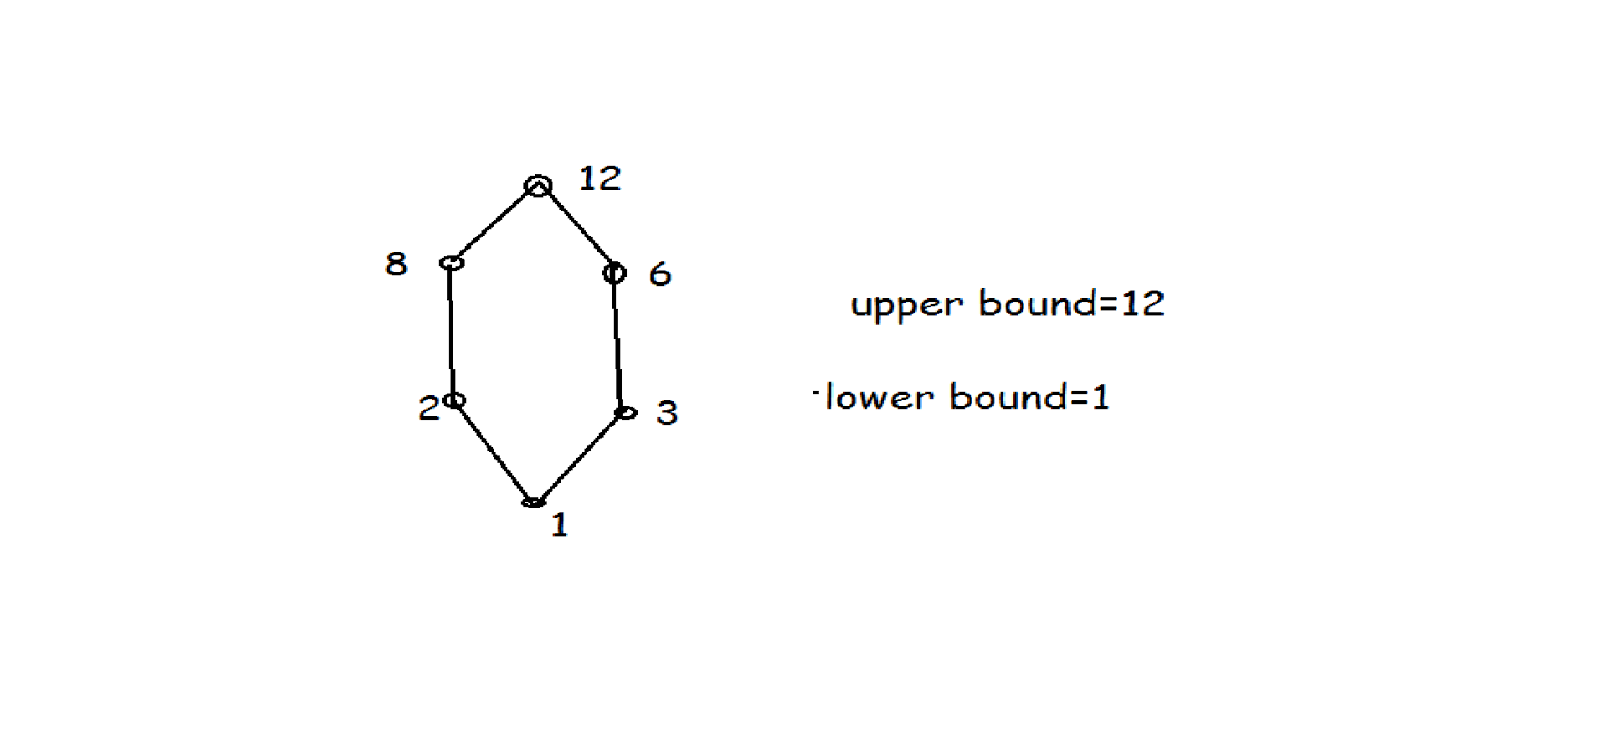 Cjuschools hasse diagram since 1 divides 3 1 and 3 are on the same line and 3 divides 6 3 and 6 are on the same line since the given relation is transitive 1 ccuart Image collections